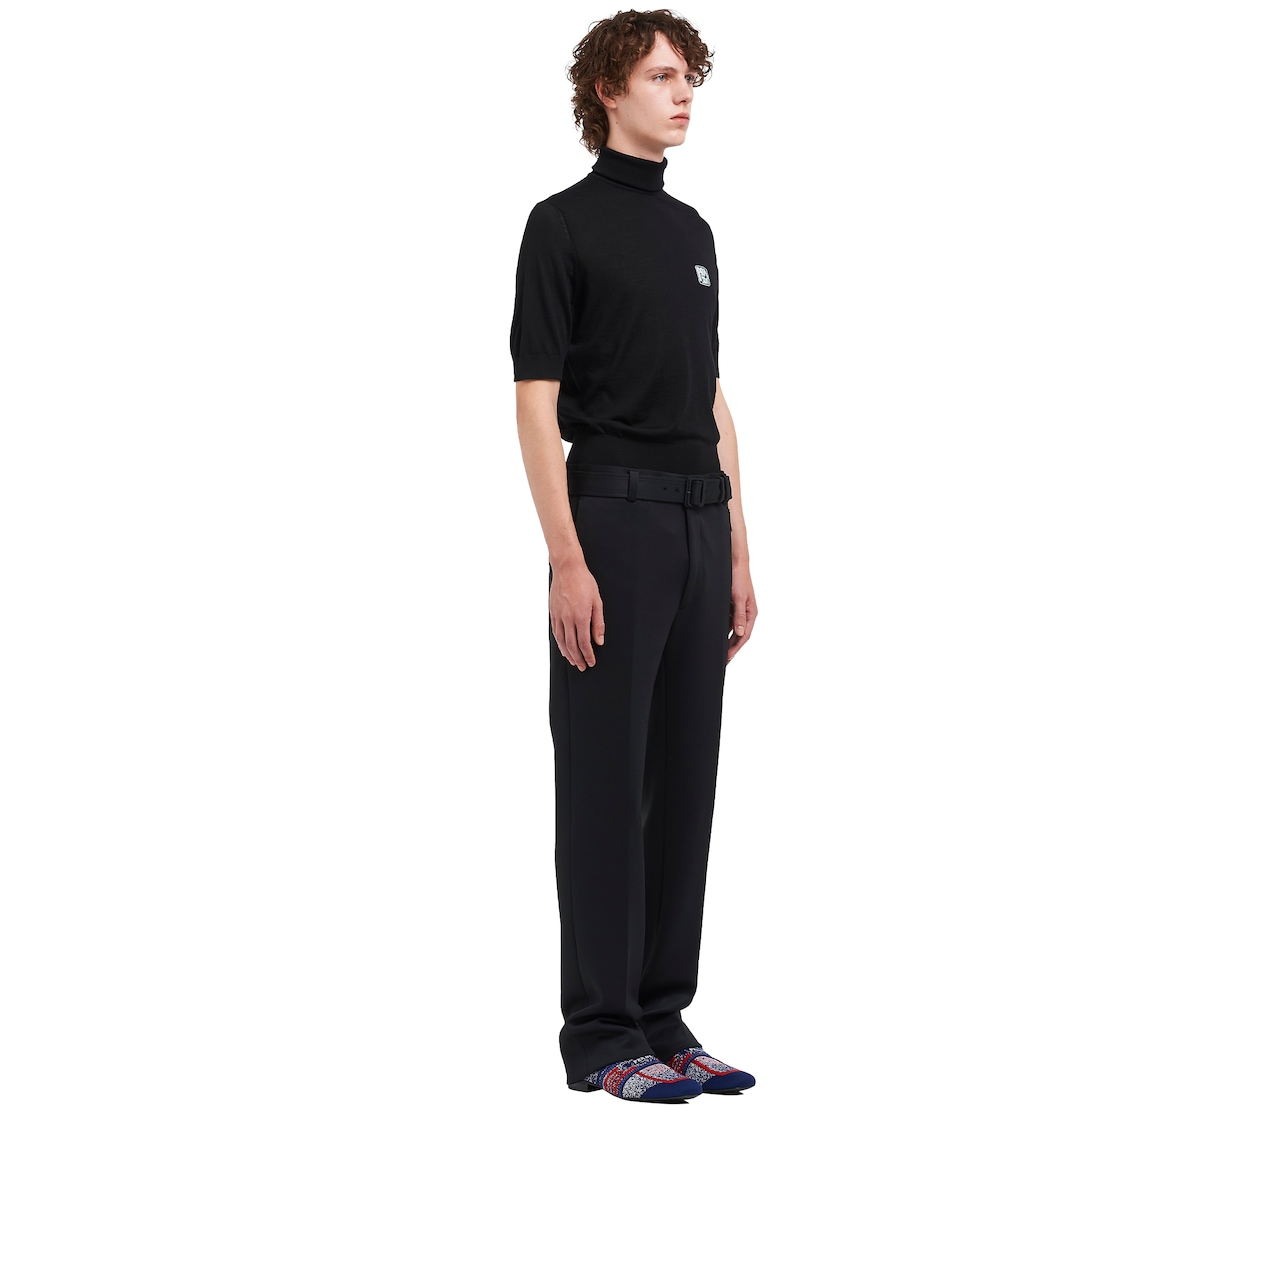 Technical jersey trousers